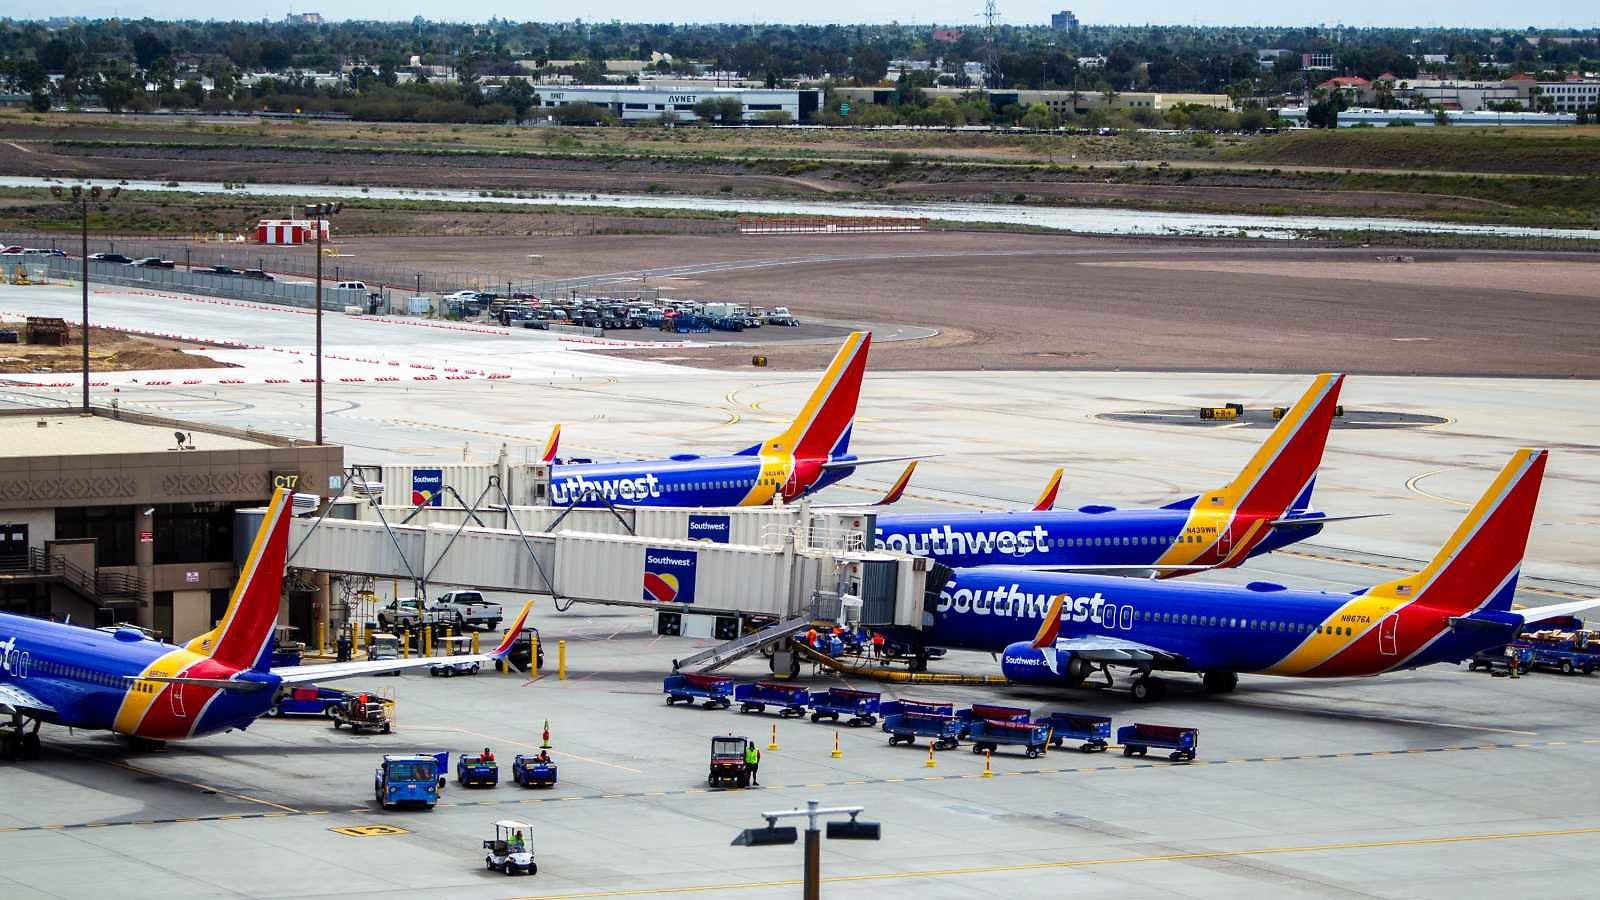 Southwest Airlines Is Offering a Free Companion Pass. Here's How to Get This Limited Deal